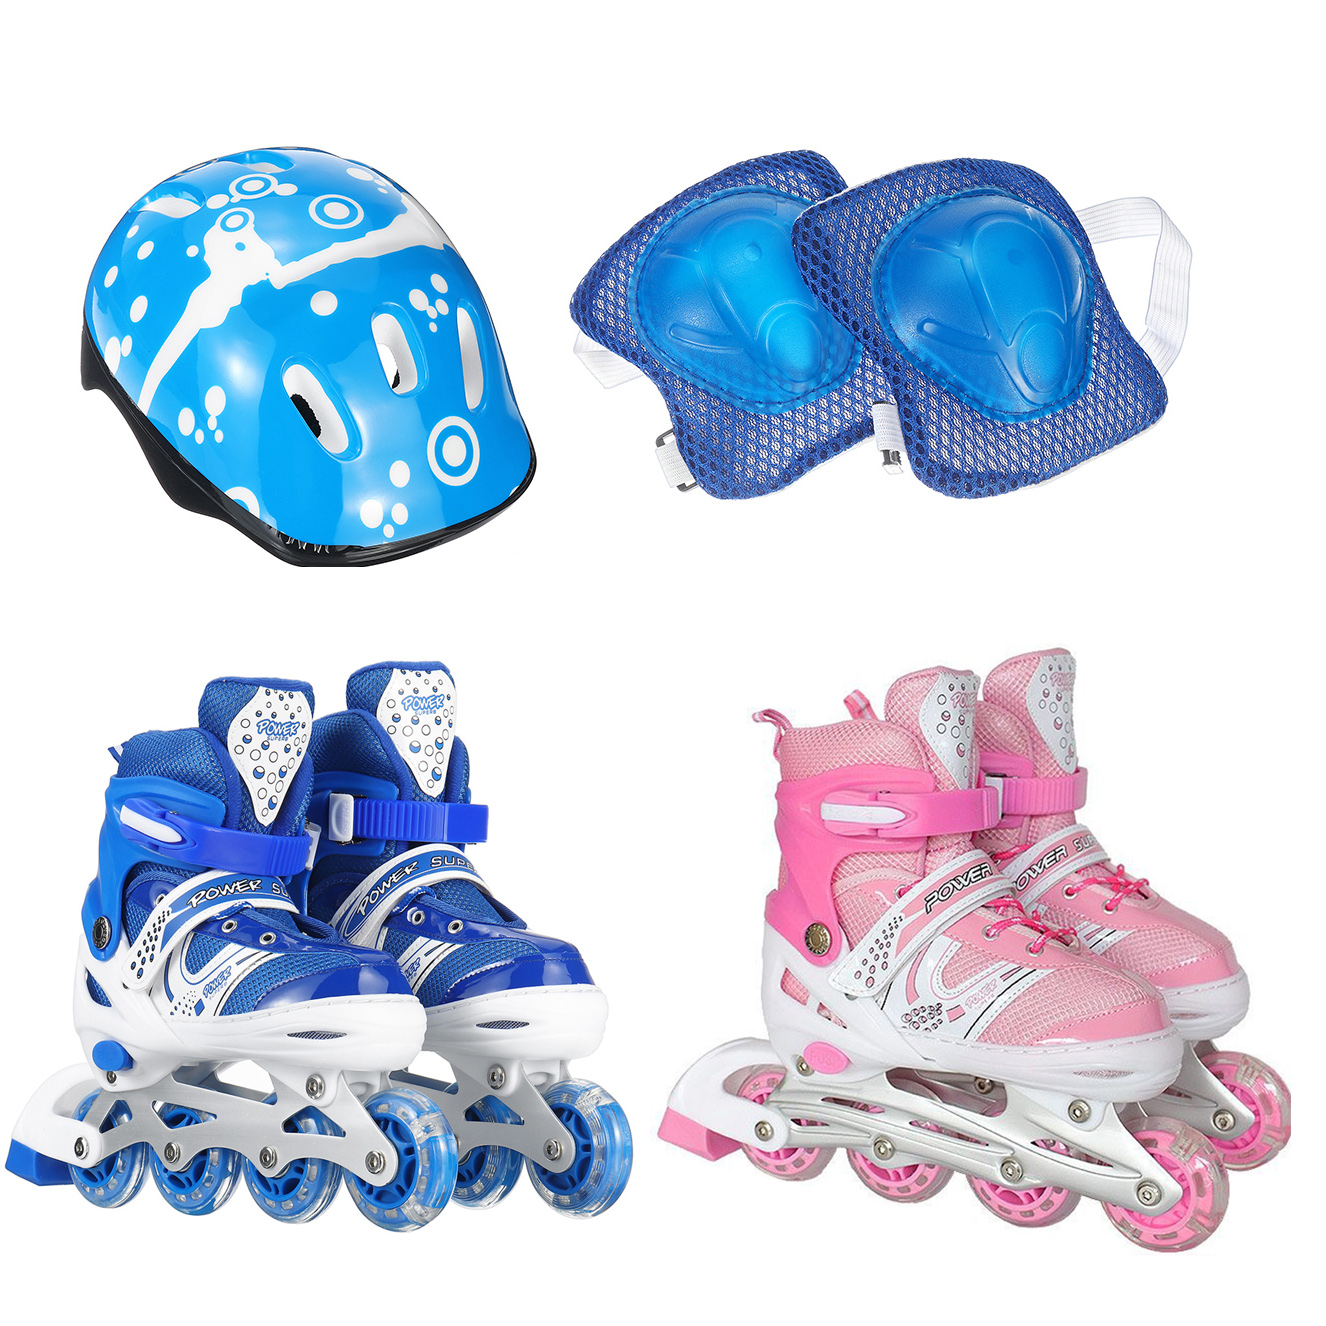 ** padding for Children ** 2 compared Professional Skate Rollerblade by gig